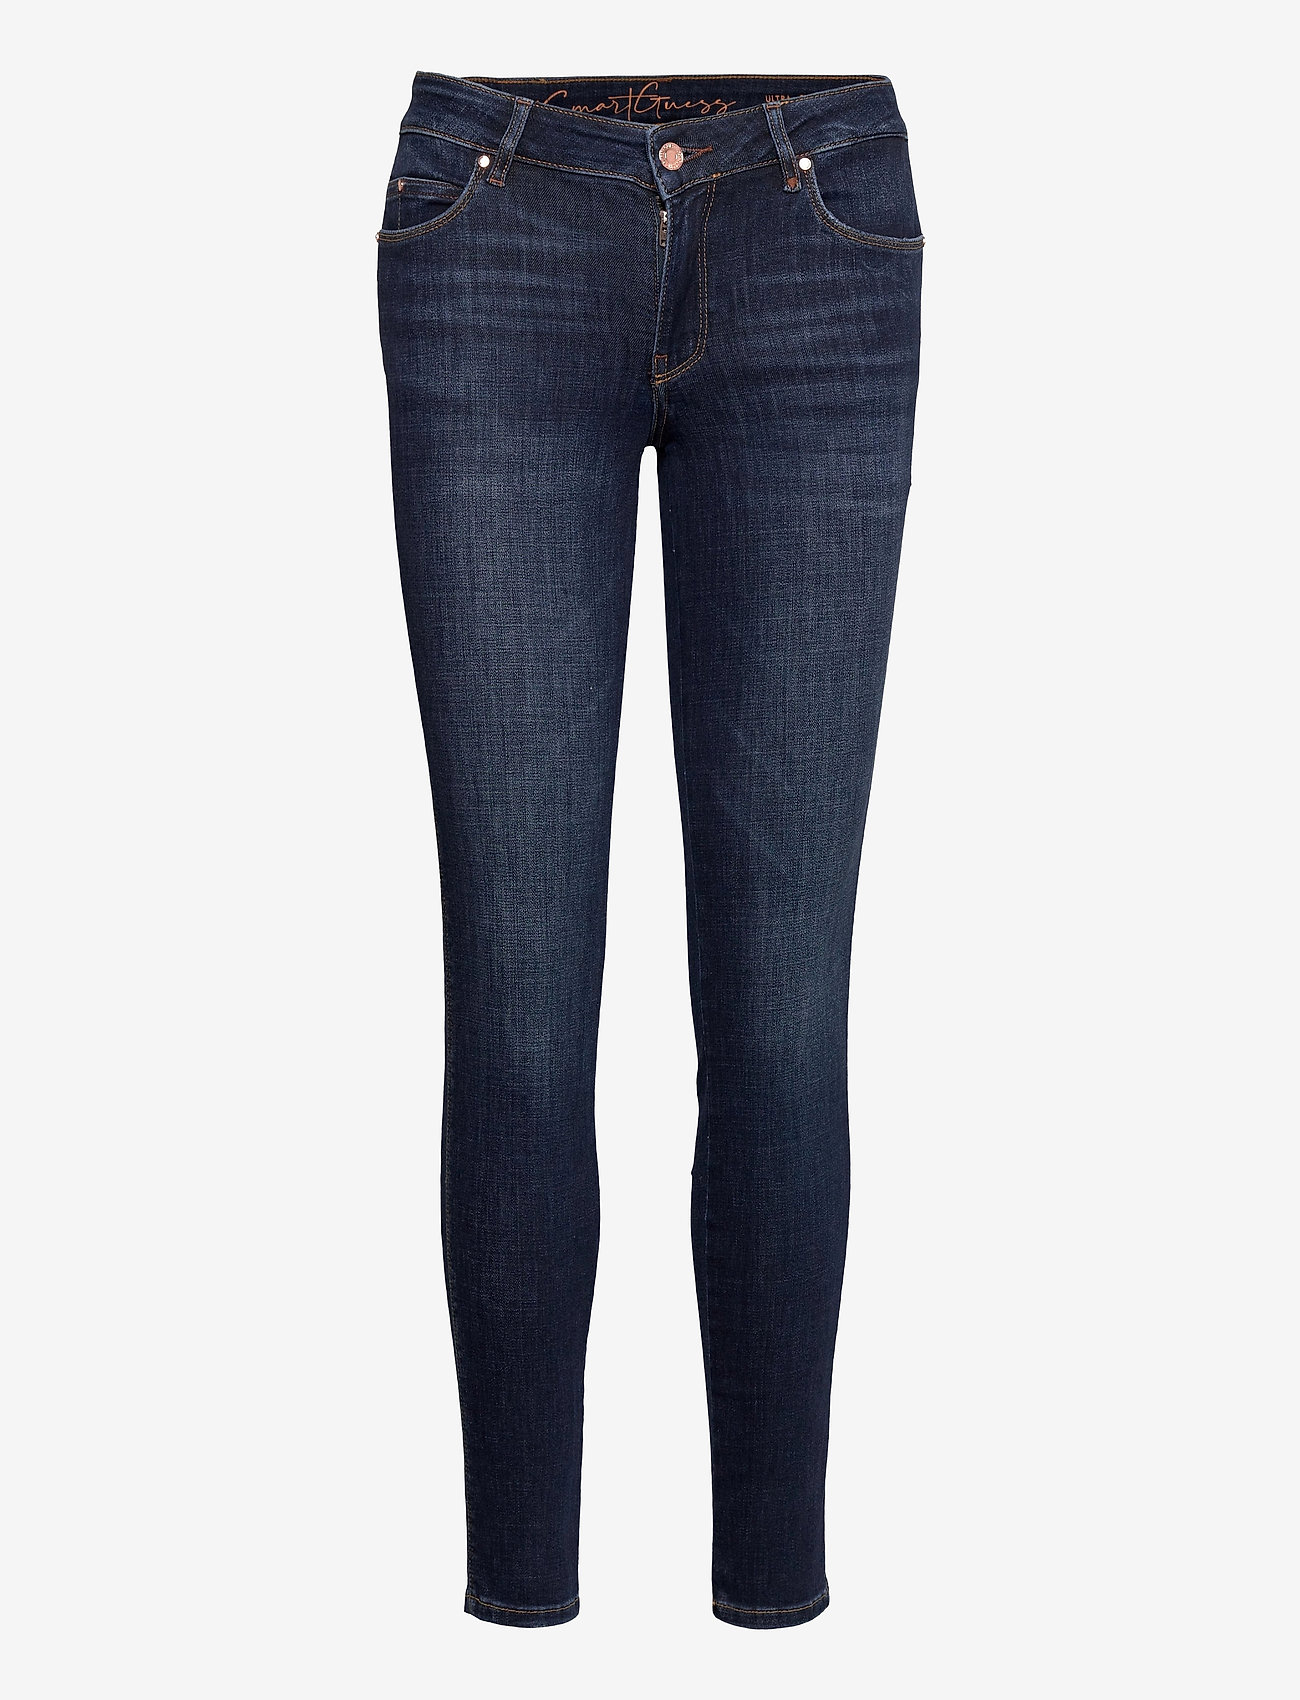 GUESS Jeans - ULTRA CURVE - skinny jeans - another wash - 0